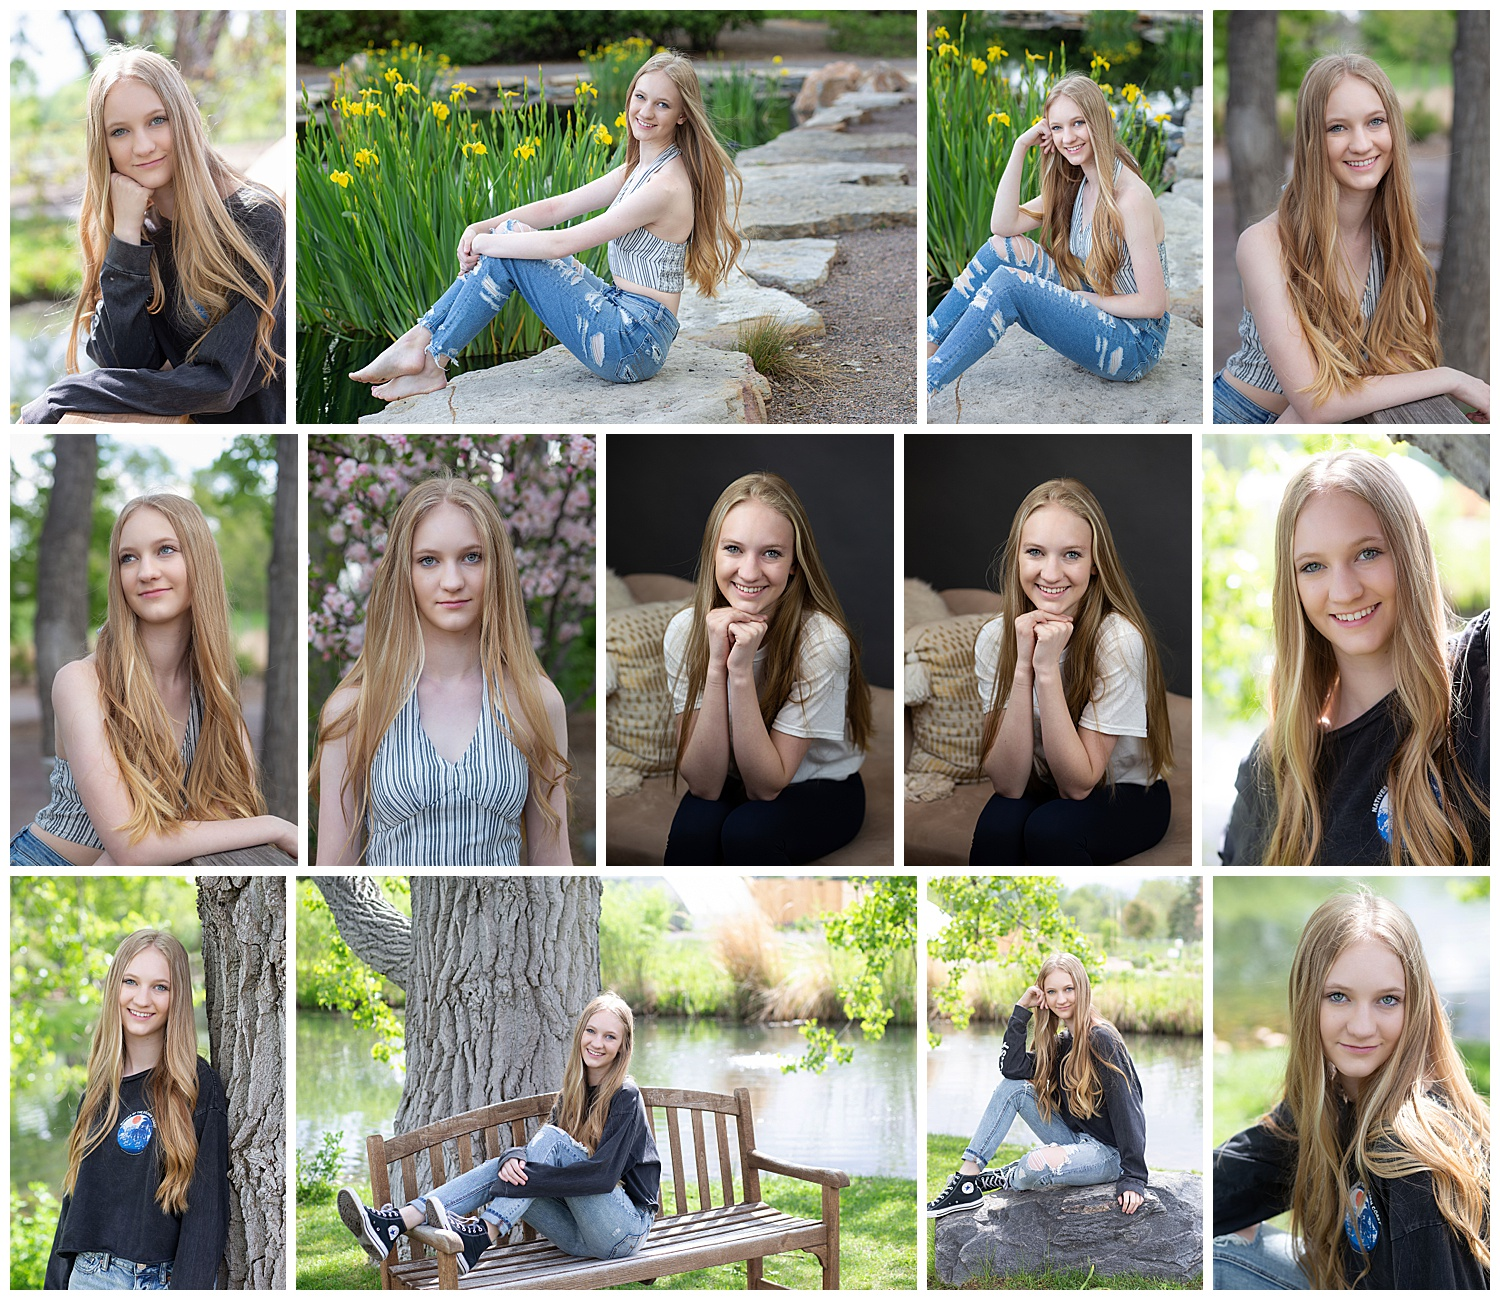 best-teen-photographer-highlands-ranch-colorado.jpg